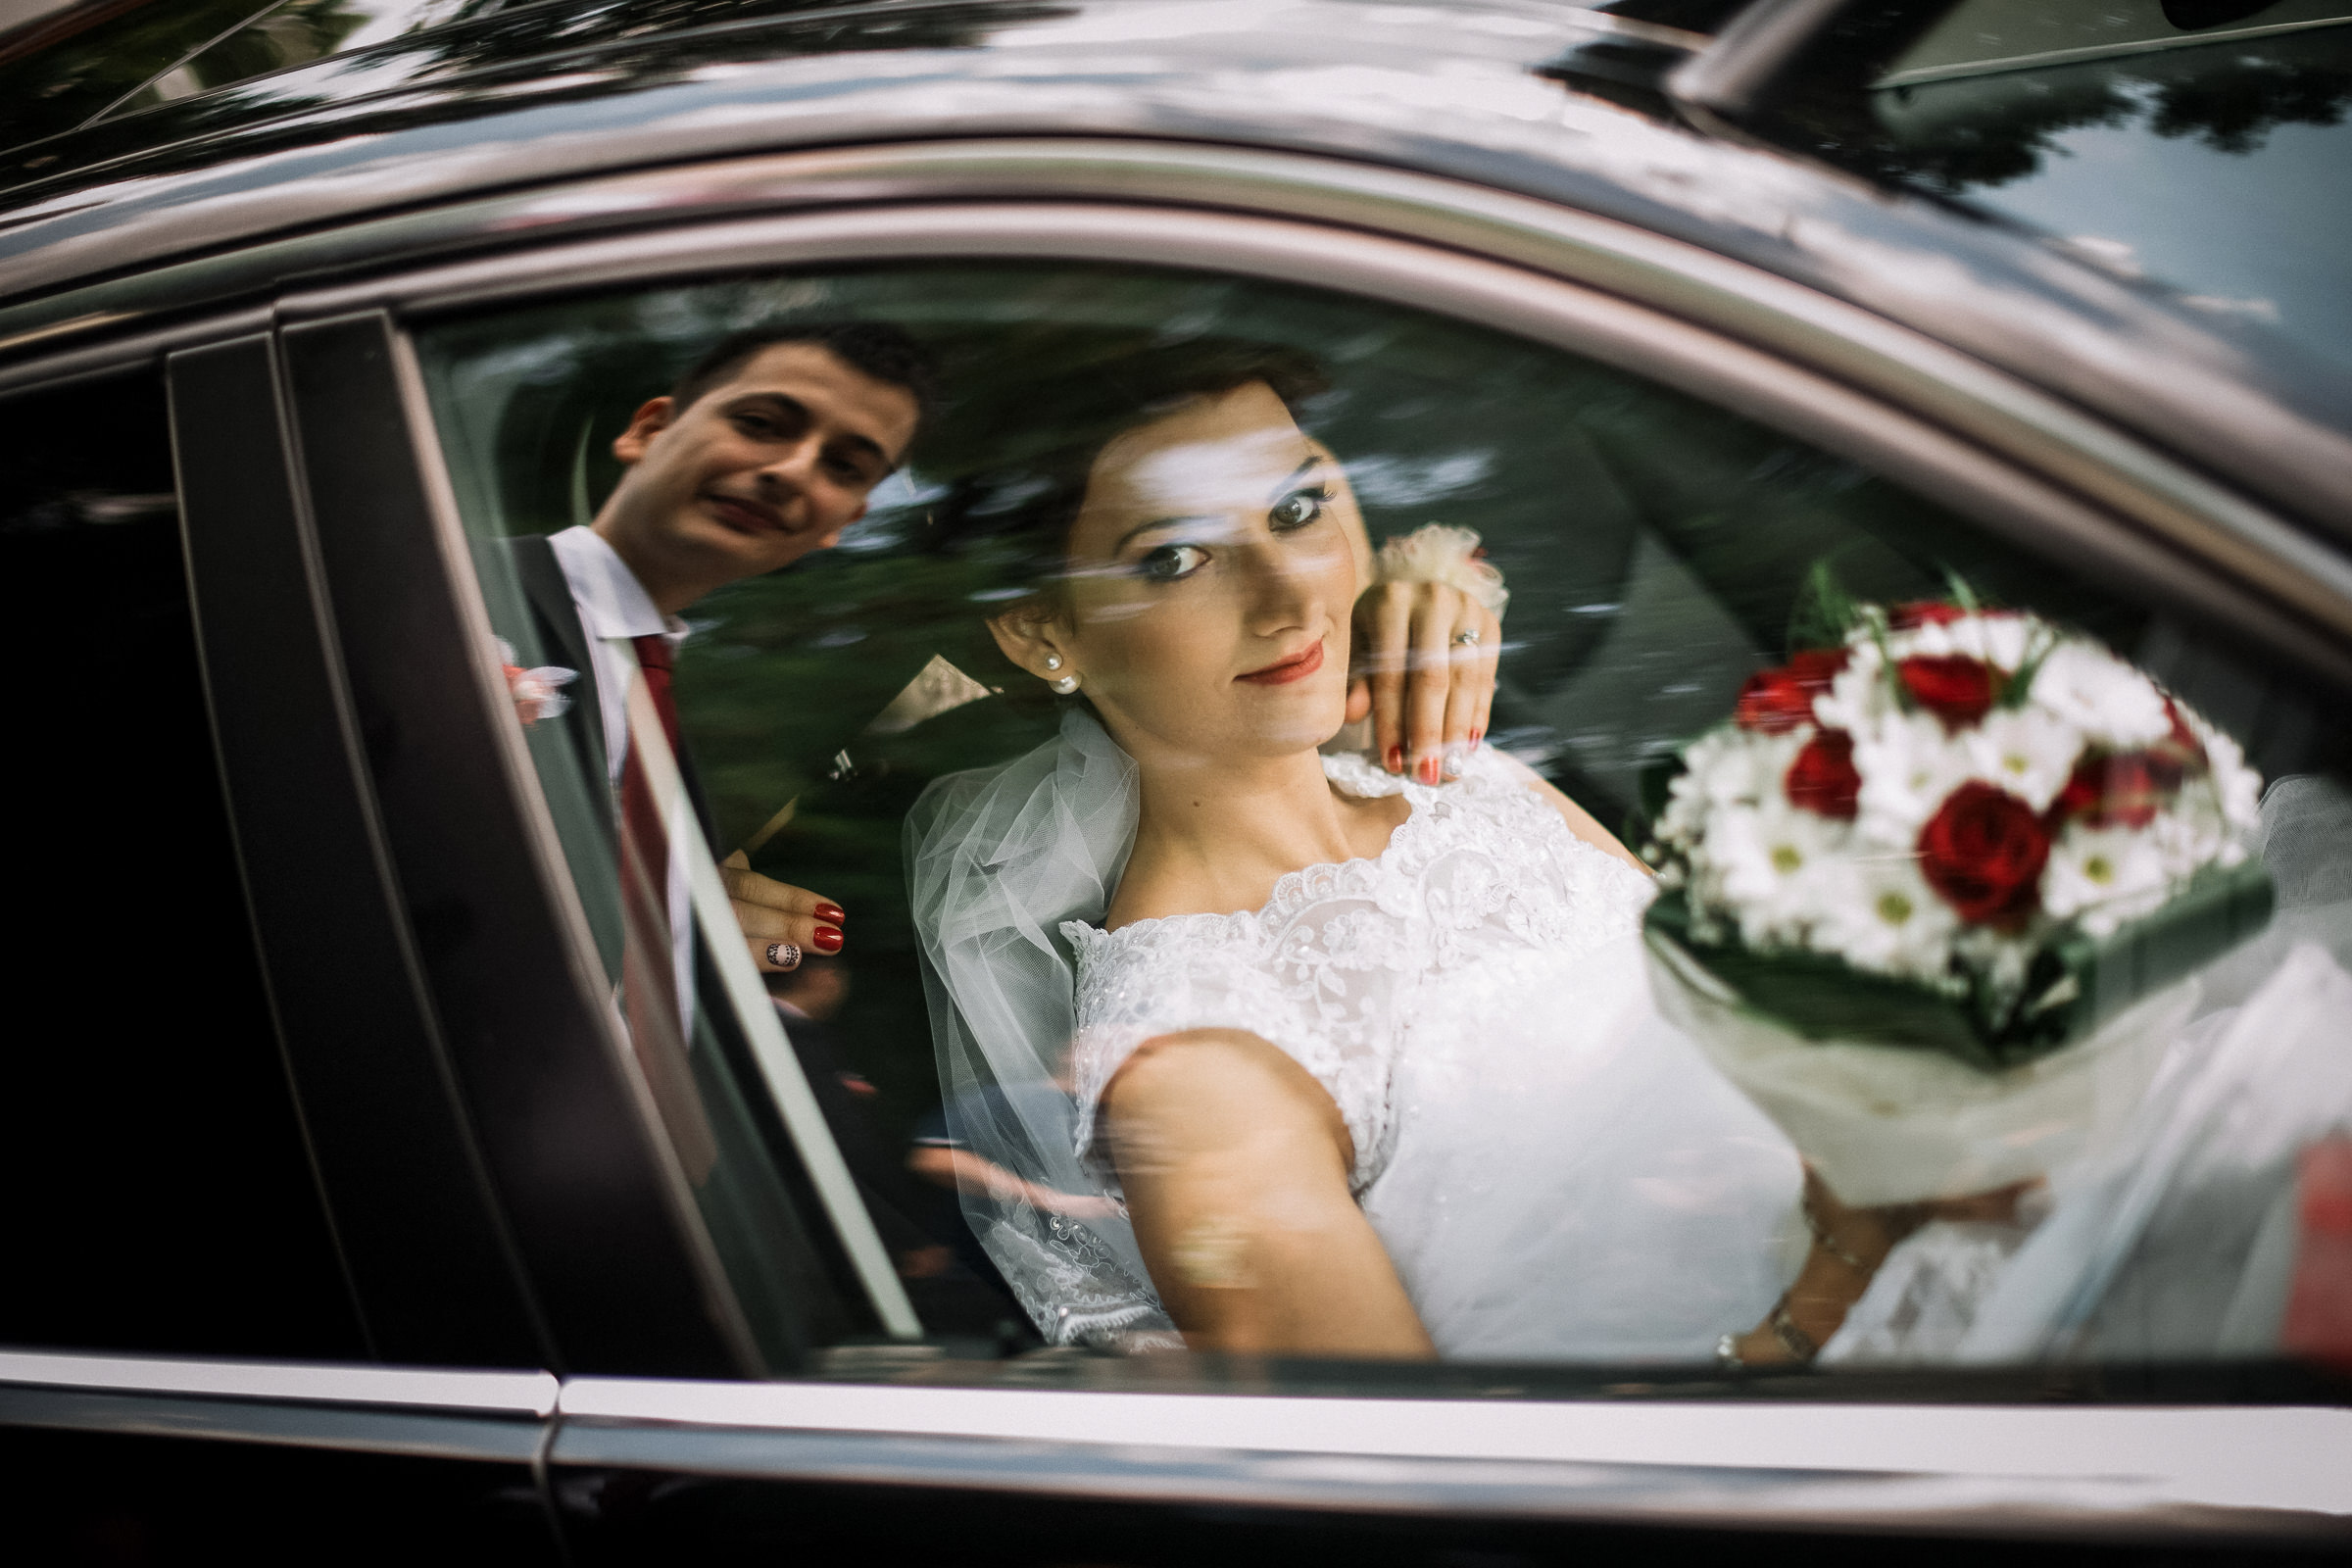 Bride in limo with groom reflected - photo by Deliysky Studio